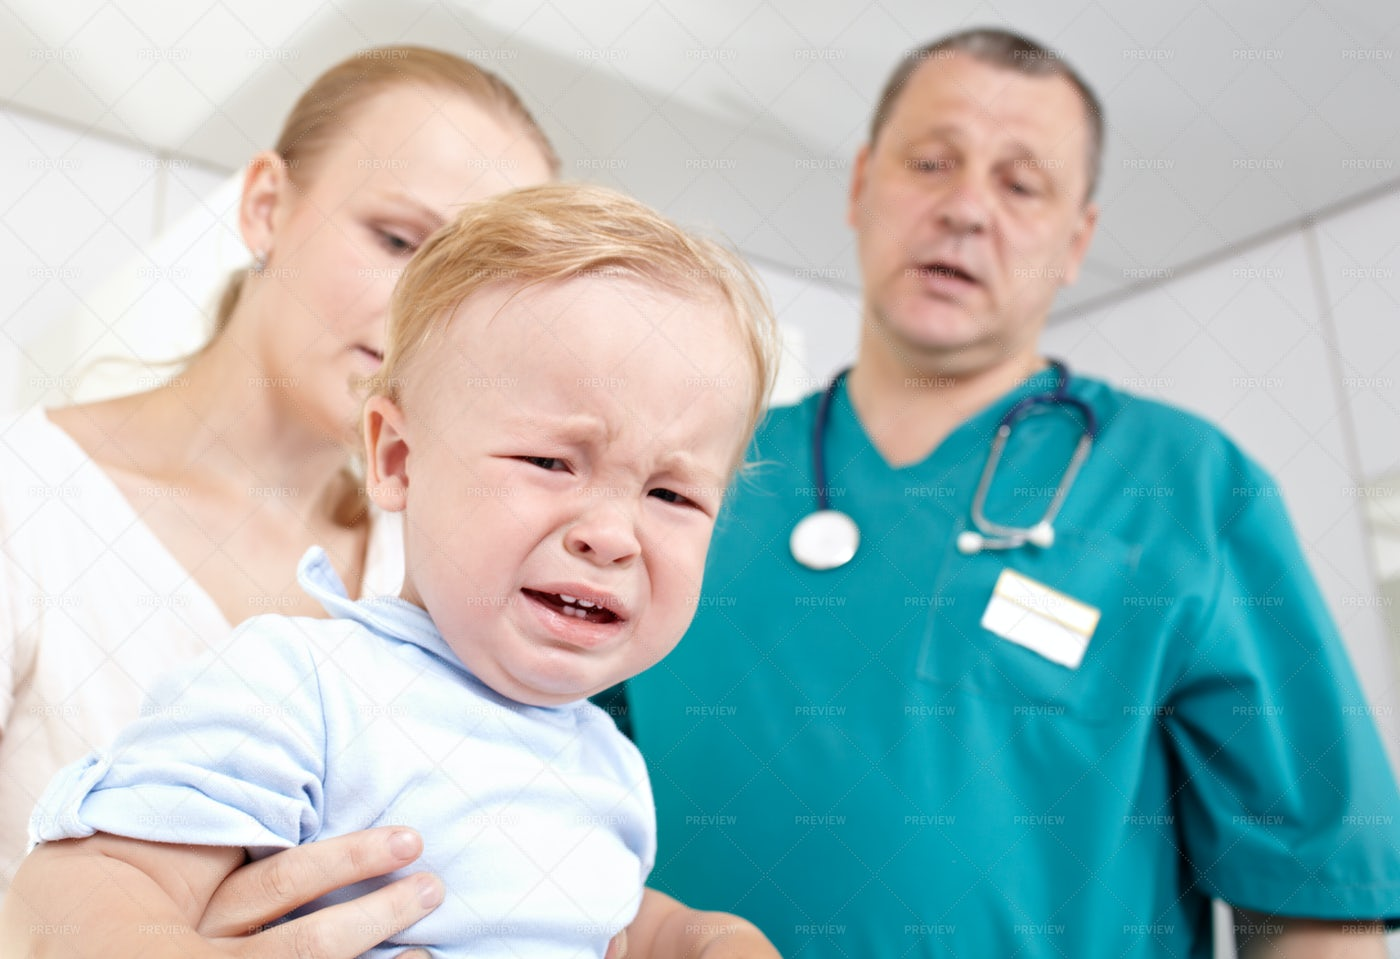 Baby Boy Crying At The Doctor´s Office: Stock Photos